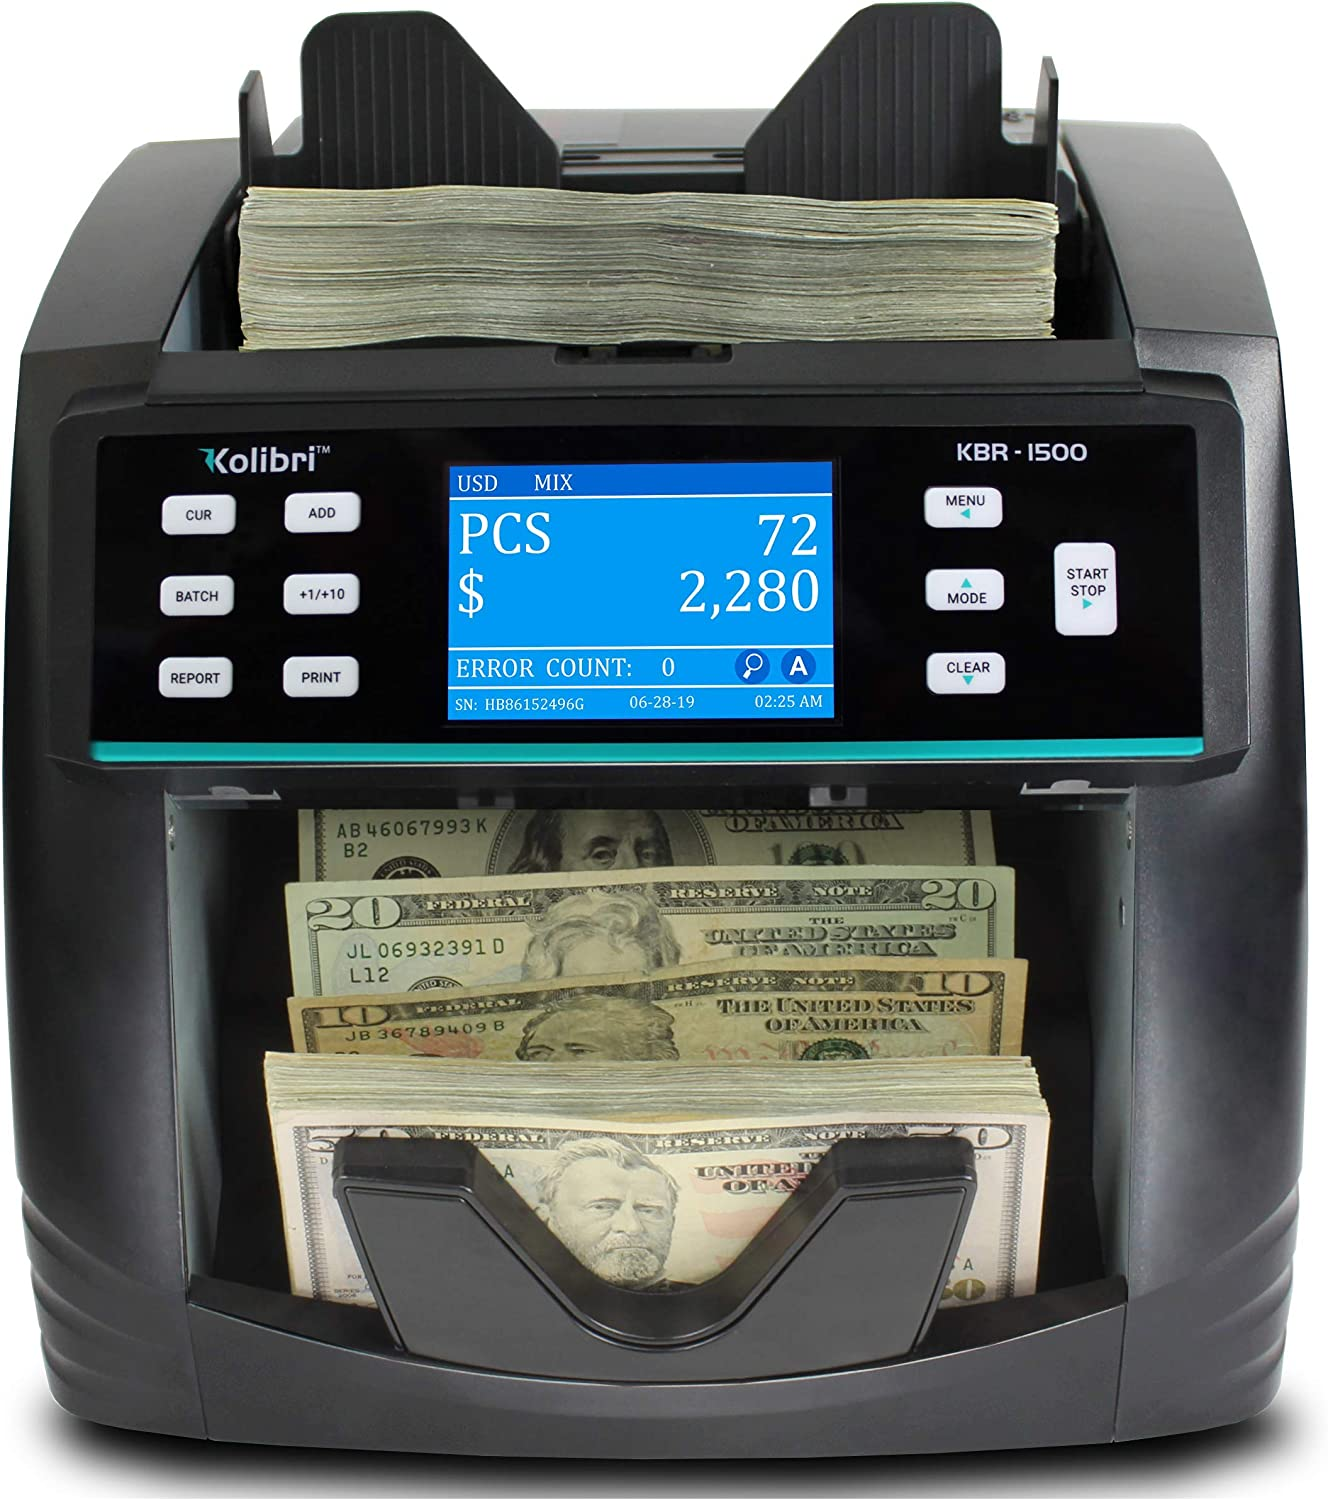 KBR-1500 Bank Grade Mixed Denomination Bill Money Value Counter with Advanced UV/MG/MT/IR/2CIS Counterfeit Detection, Multi-Currency (USD, CAD, MXN), Sorting and Receipt Printing Function